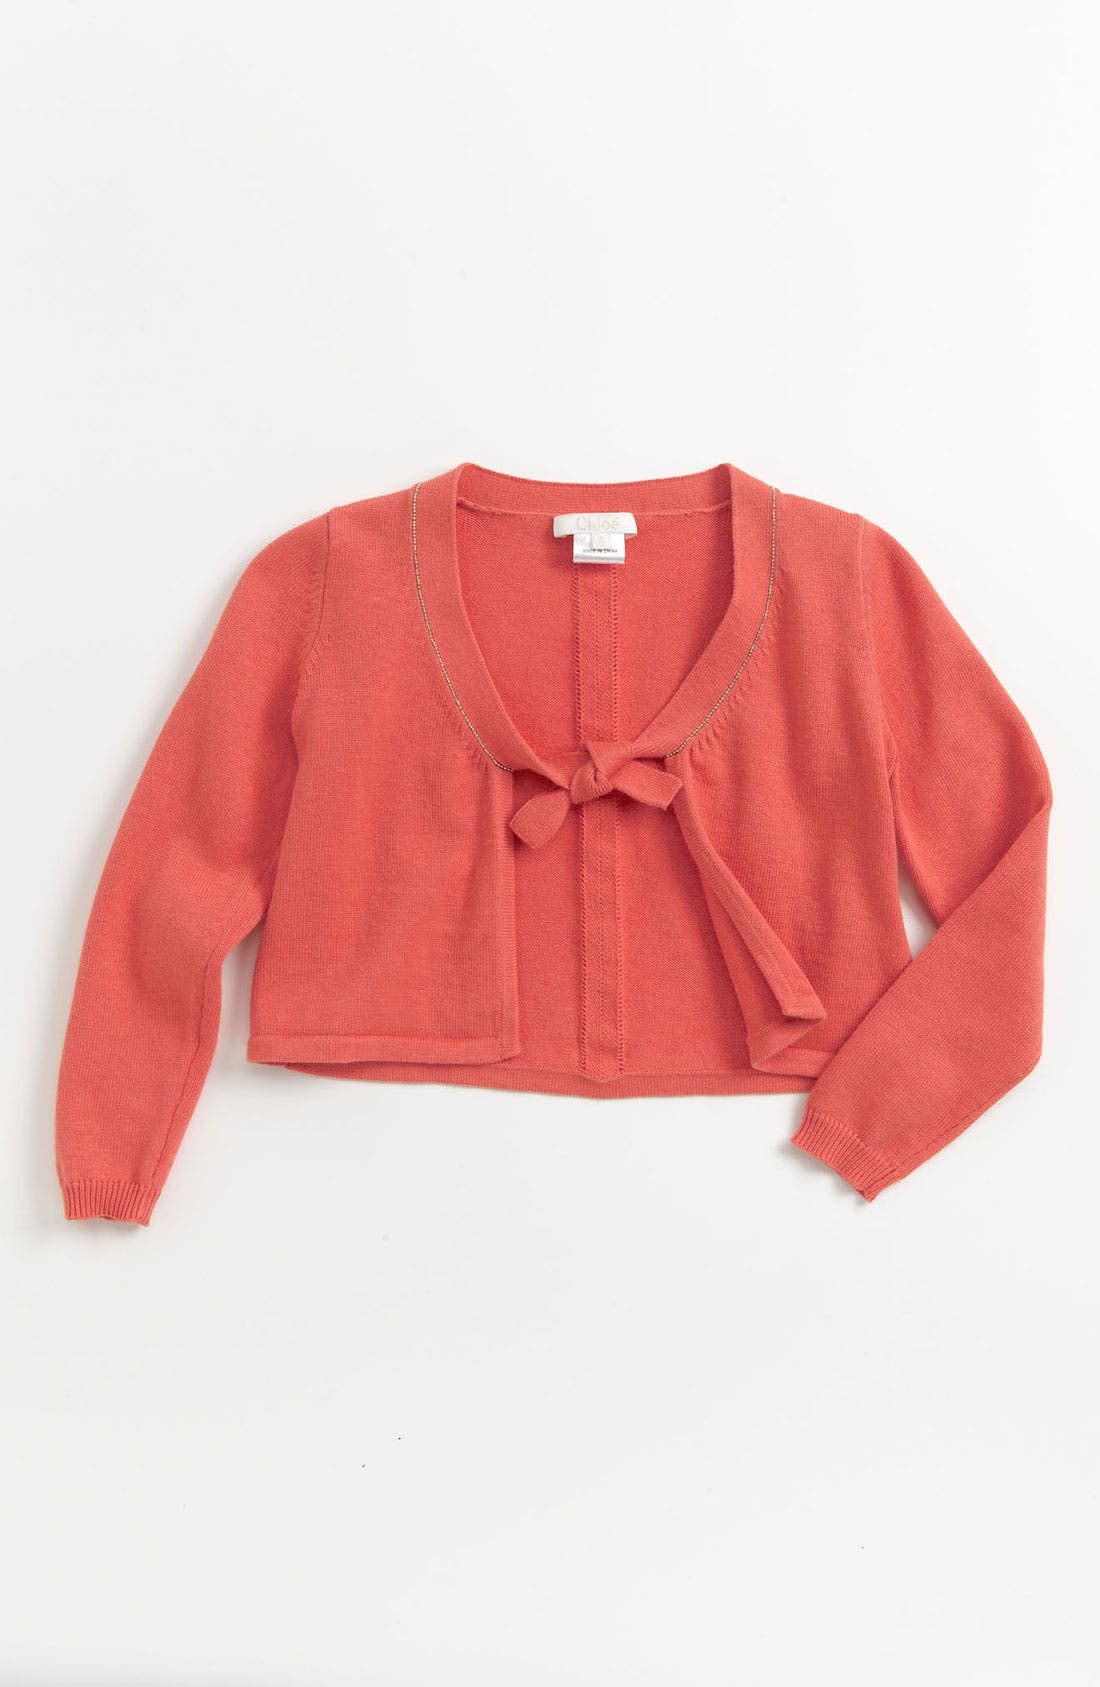 Main Image - Chloé Knit Bolero (Toddler, Little Girls & Big Girls)